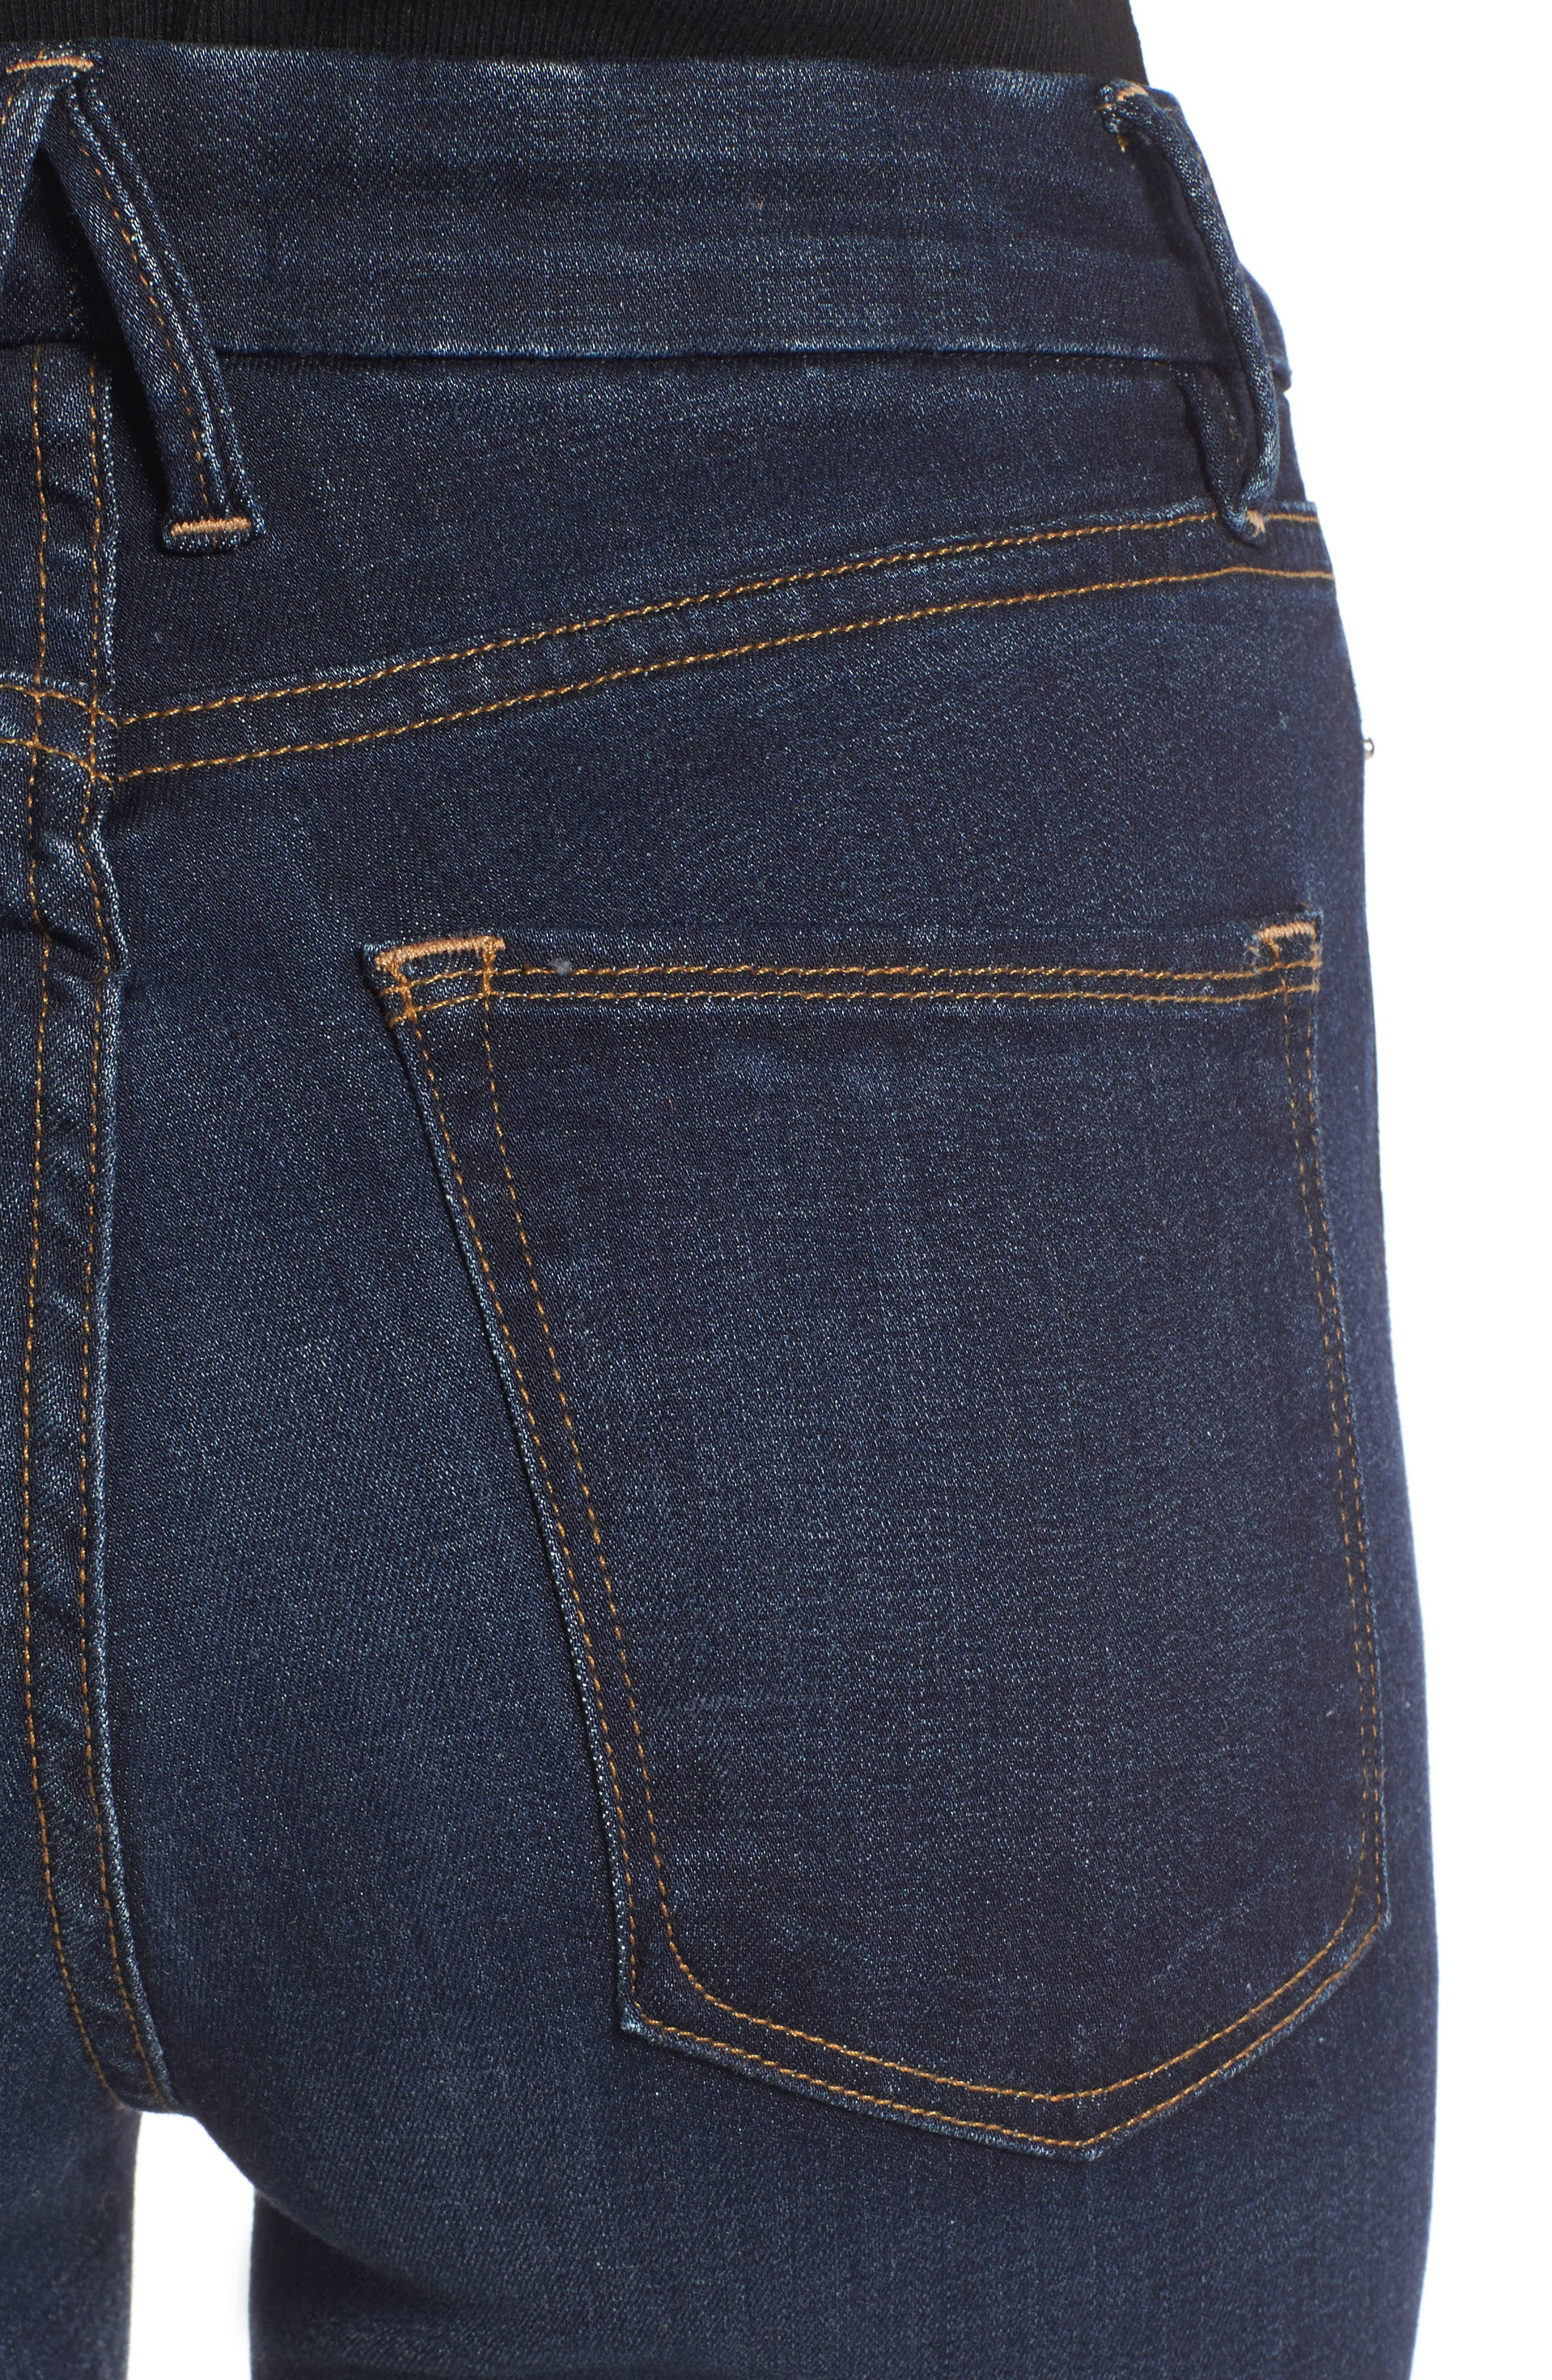 Alternate Image 4  - Good American Good Legs High Waist Ankle Skinny Jeans (Extended Sizes)